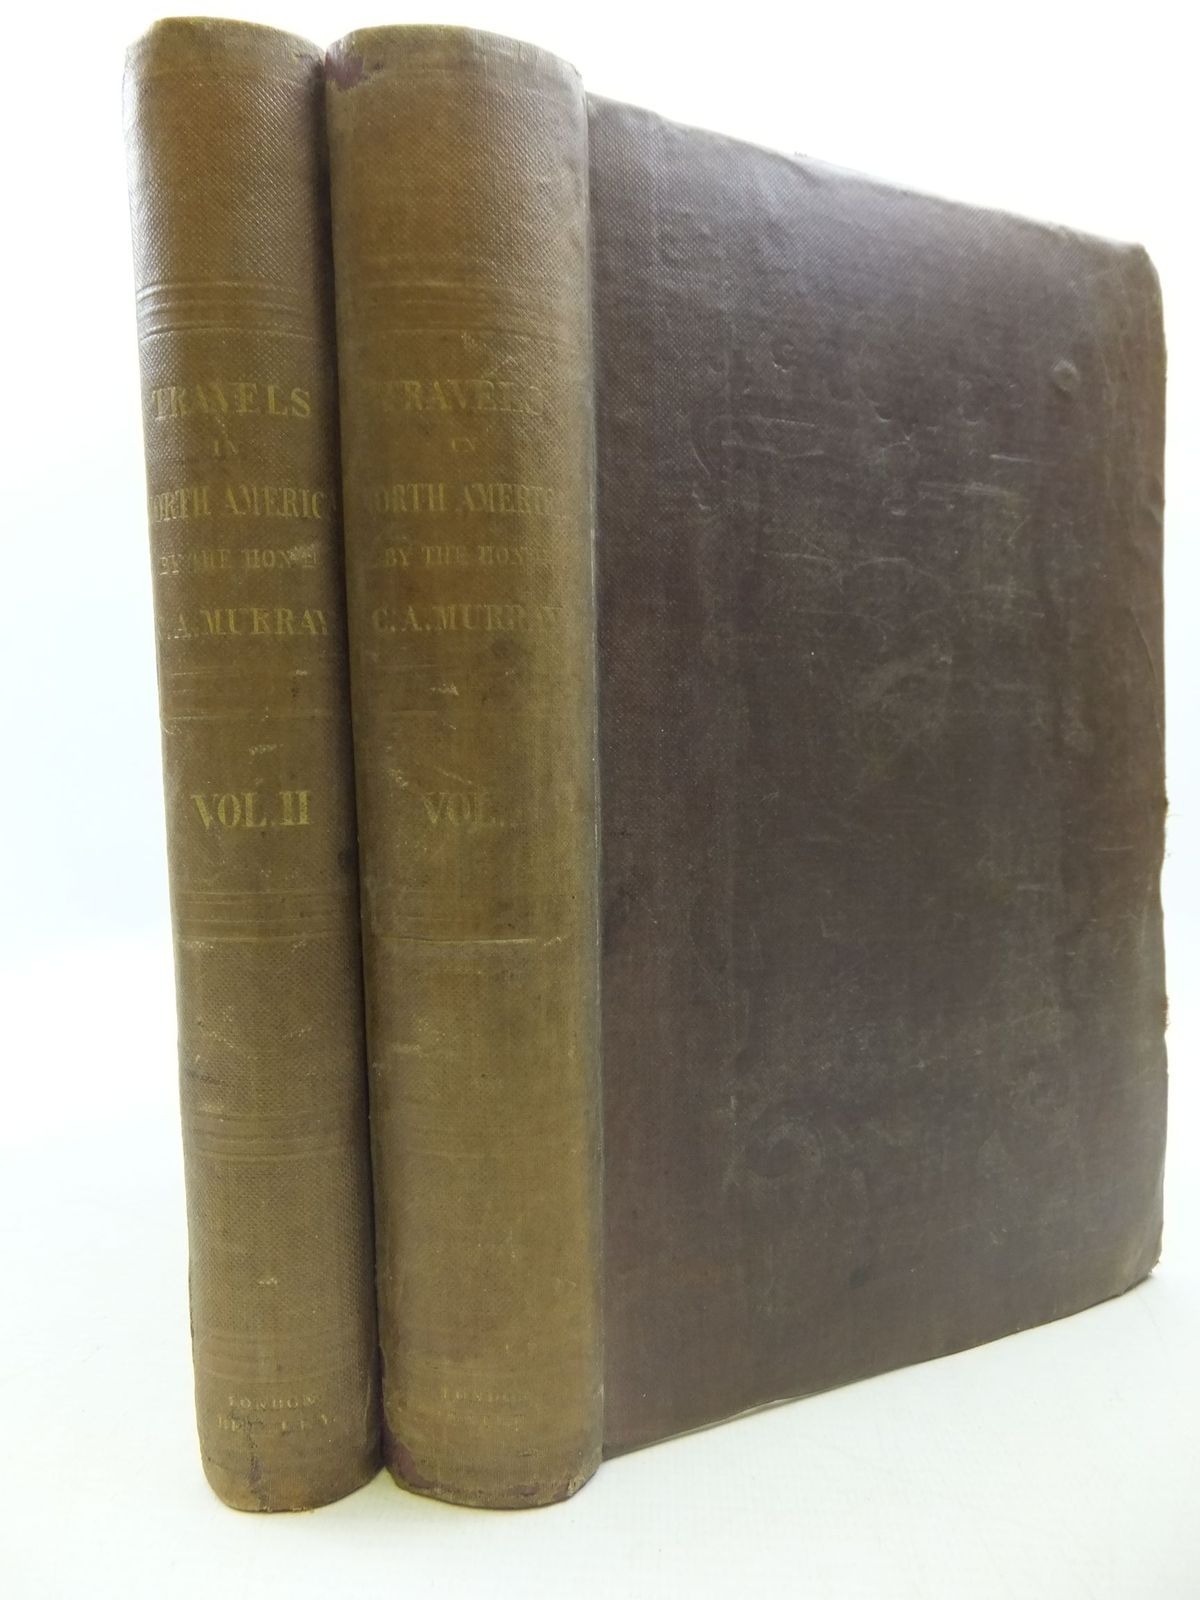 Photo of TRAVELS IN NORTH AMERICA DURING THE YEARS 1834, 1835 AND 1836 INCLUDING A SUMMER RESIDENCE WITH THE PAWNEE TRIBE OF INDIANS, IN THE REMOTE PRAIRIES OF THE MISSOURI, AND A VISIT TO CUBA AND THE AZORE ISLANDS written by Murray, Charles Augustus published by Richard Bentley (STOCK CODE: 1708934)  for sale by Stella & Rose's Books